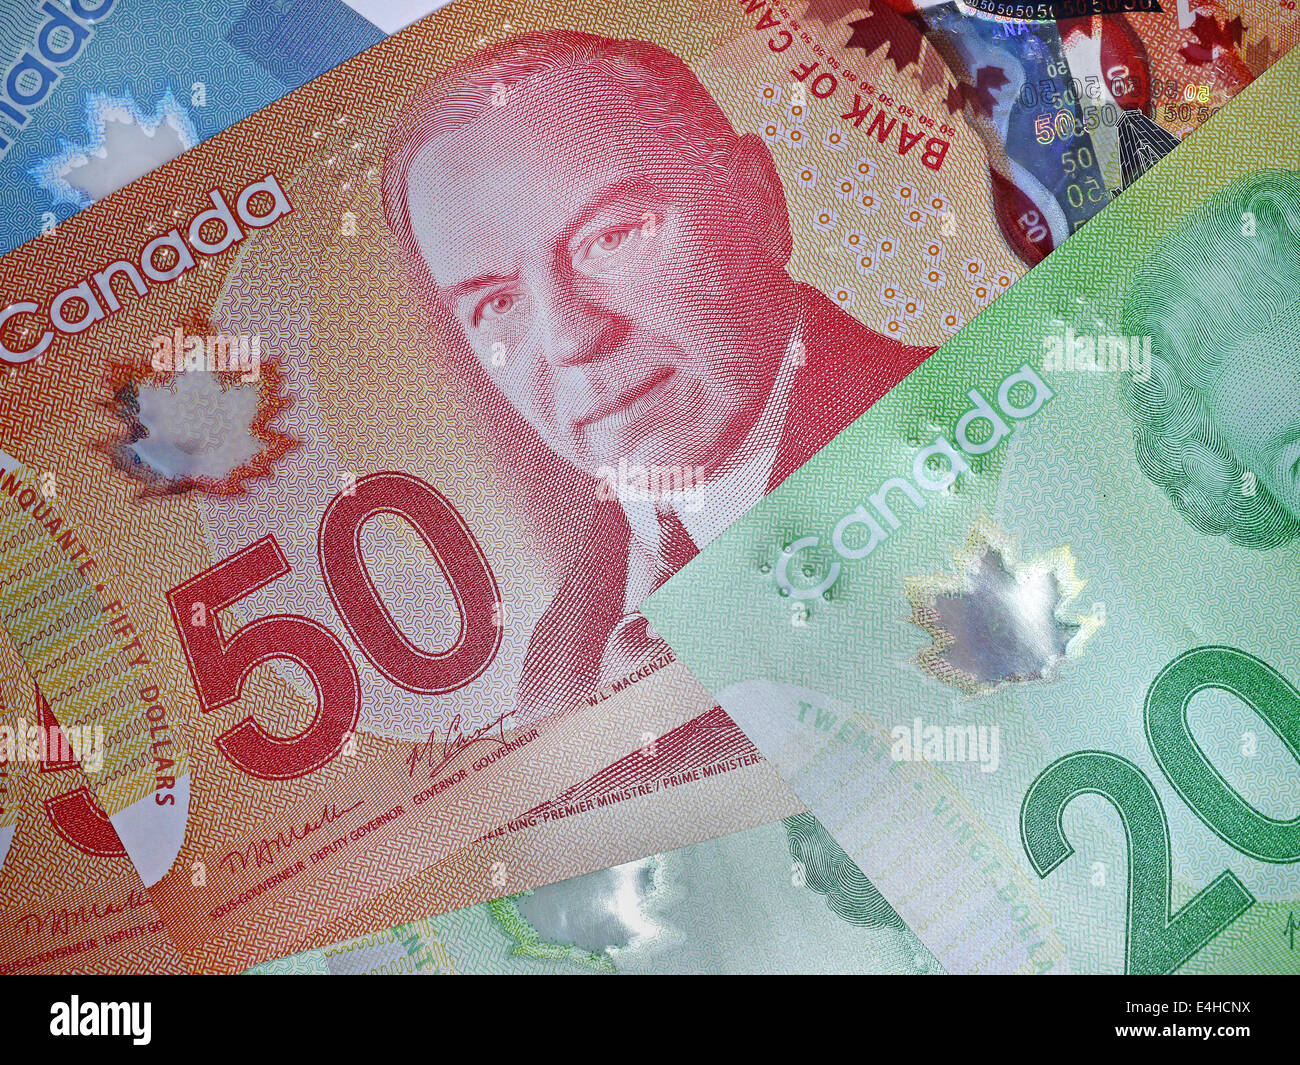 Canadian currency made of polymer instead of paper - Stock Image